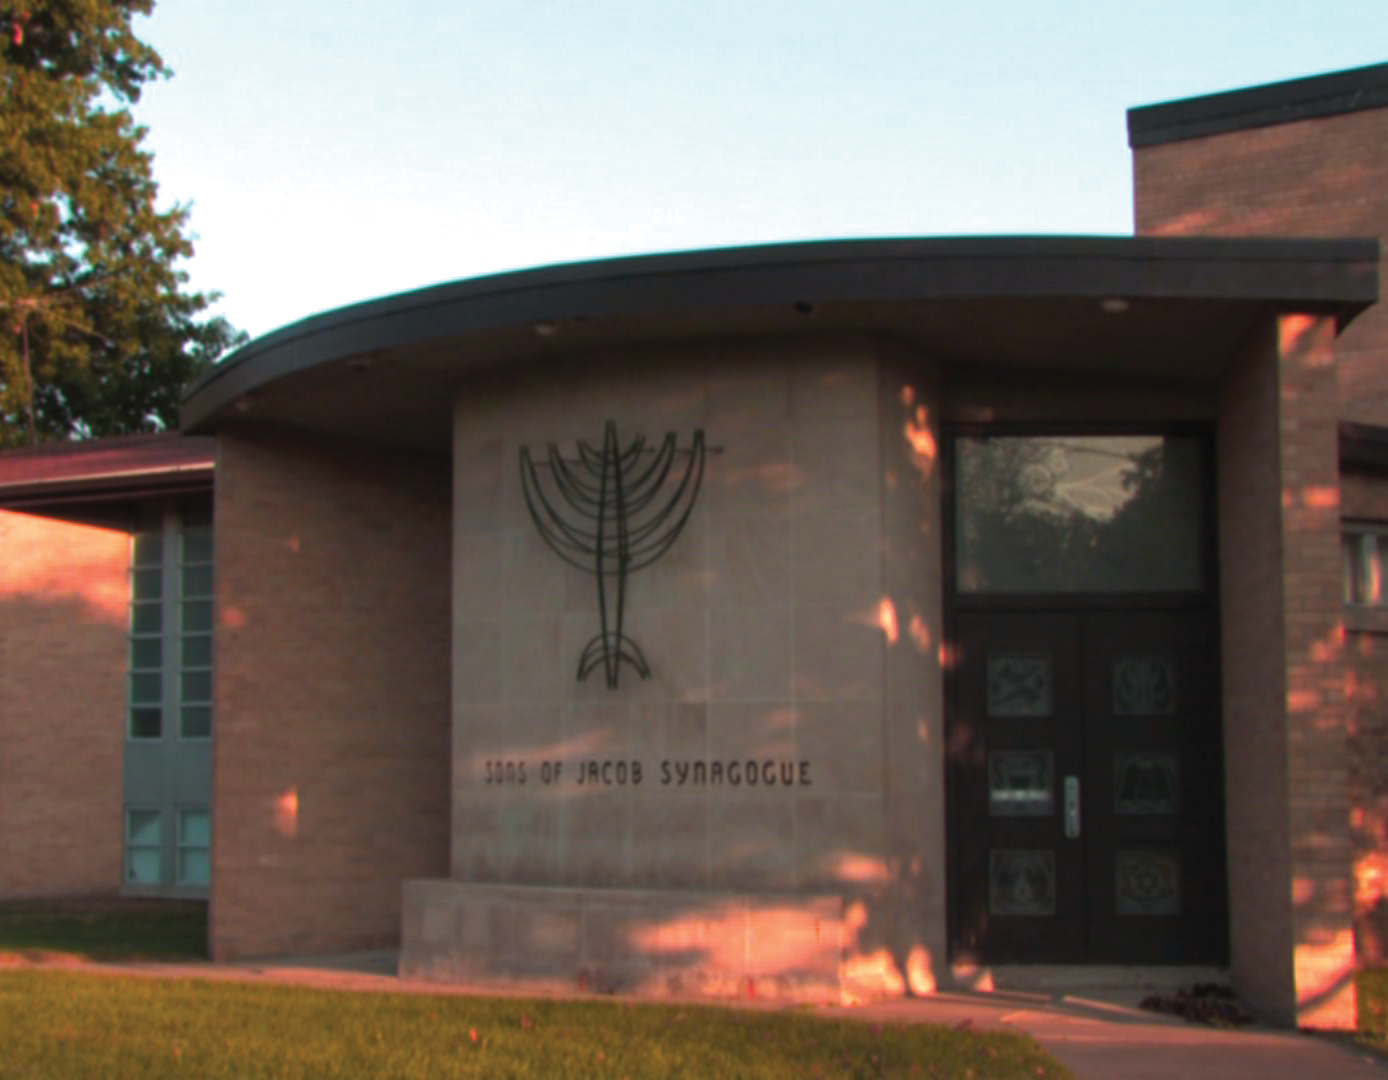 The Sons of Jacob Synagogue in Waterloo is hosting a special speaker for two of their upcoming High Holidays.